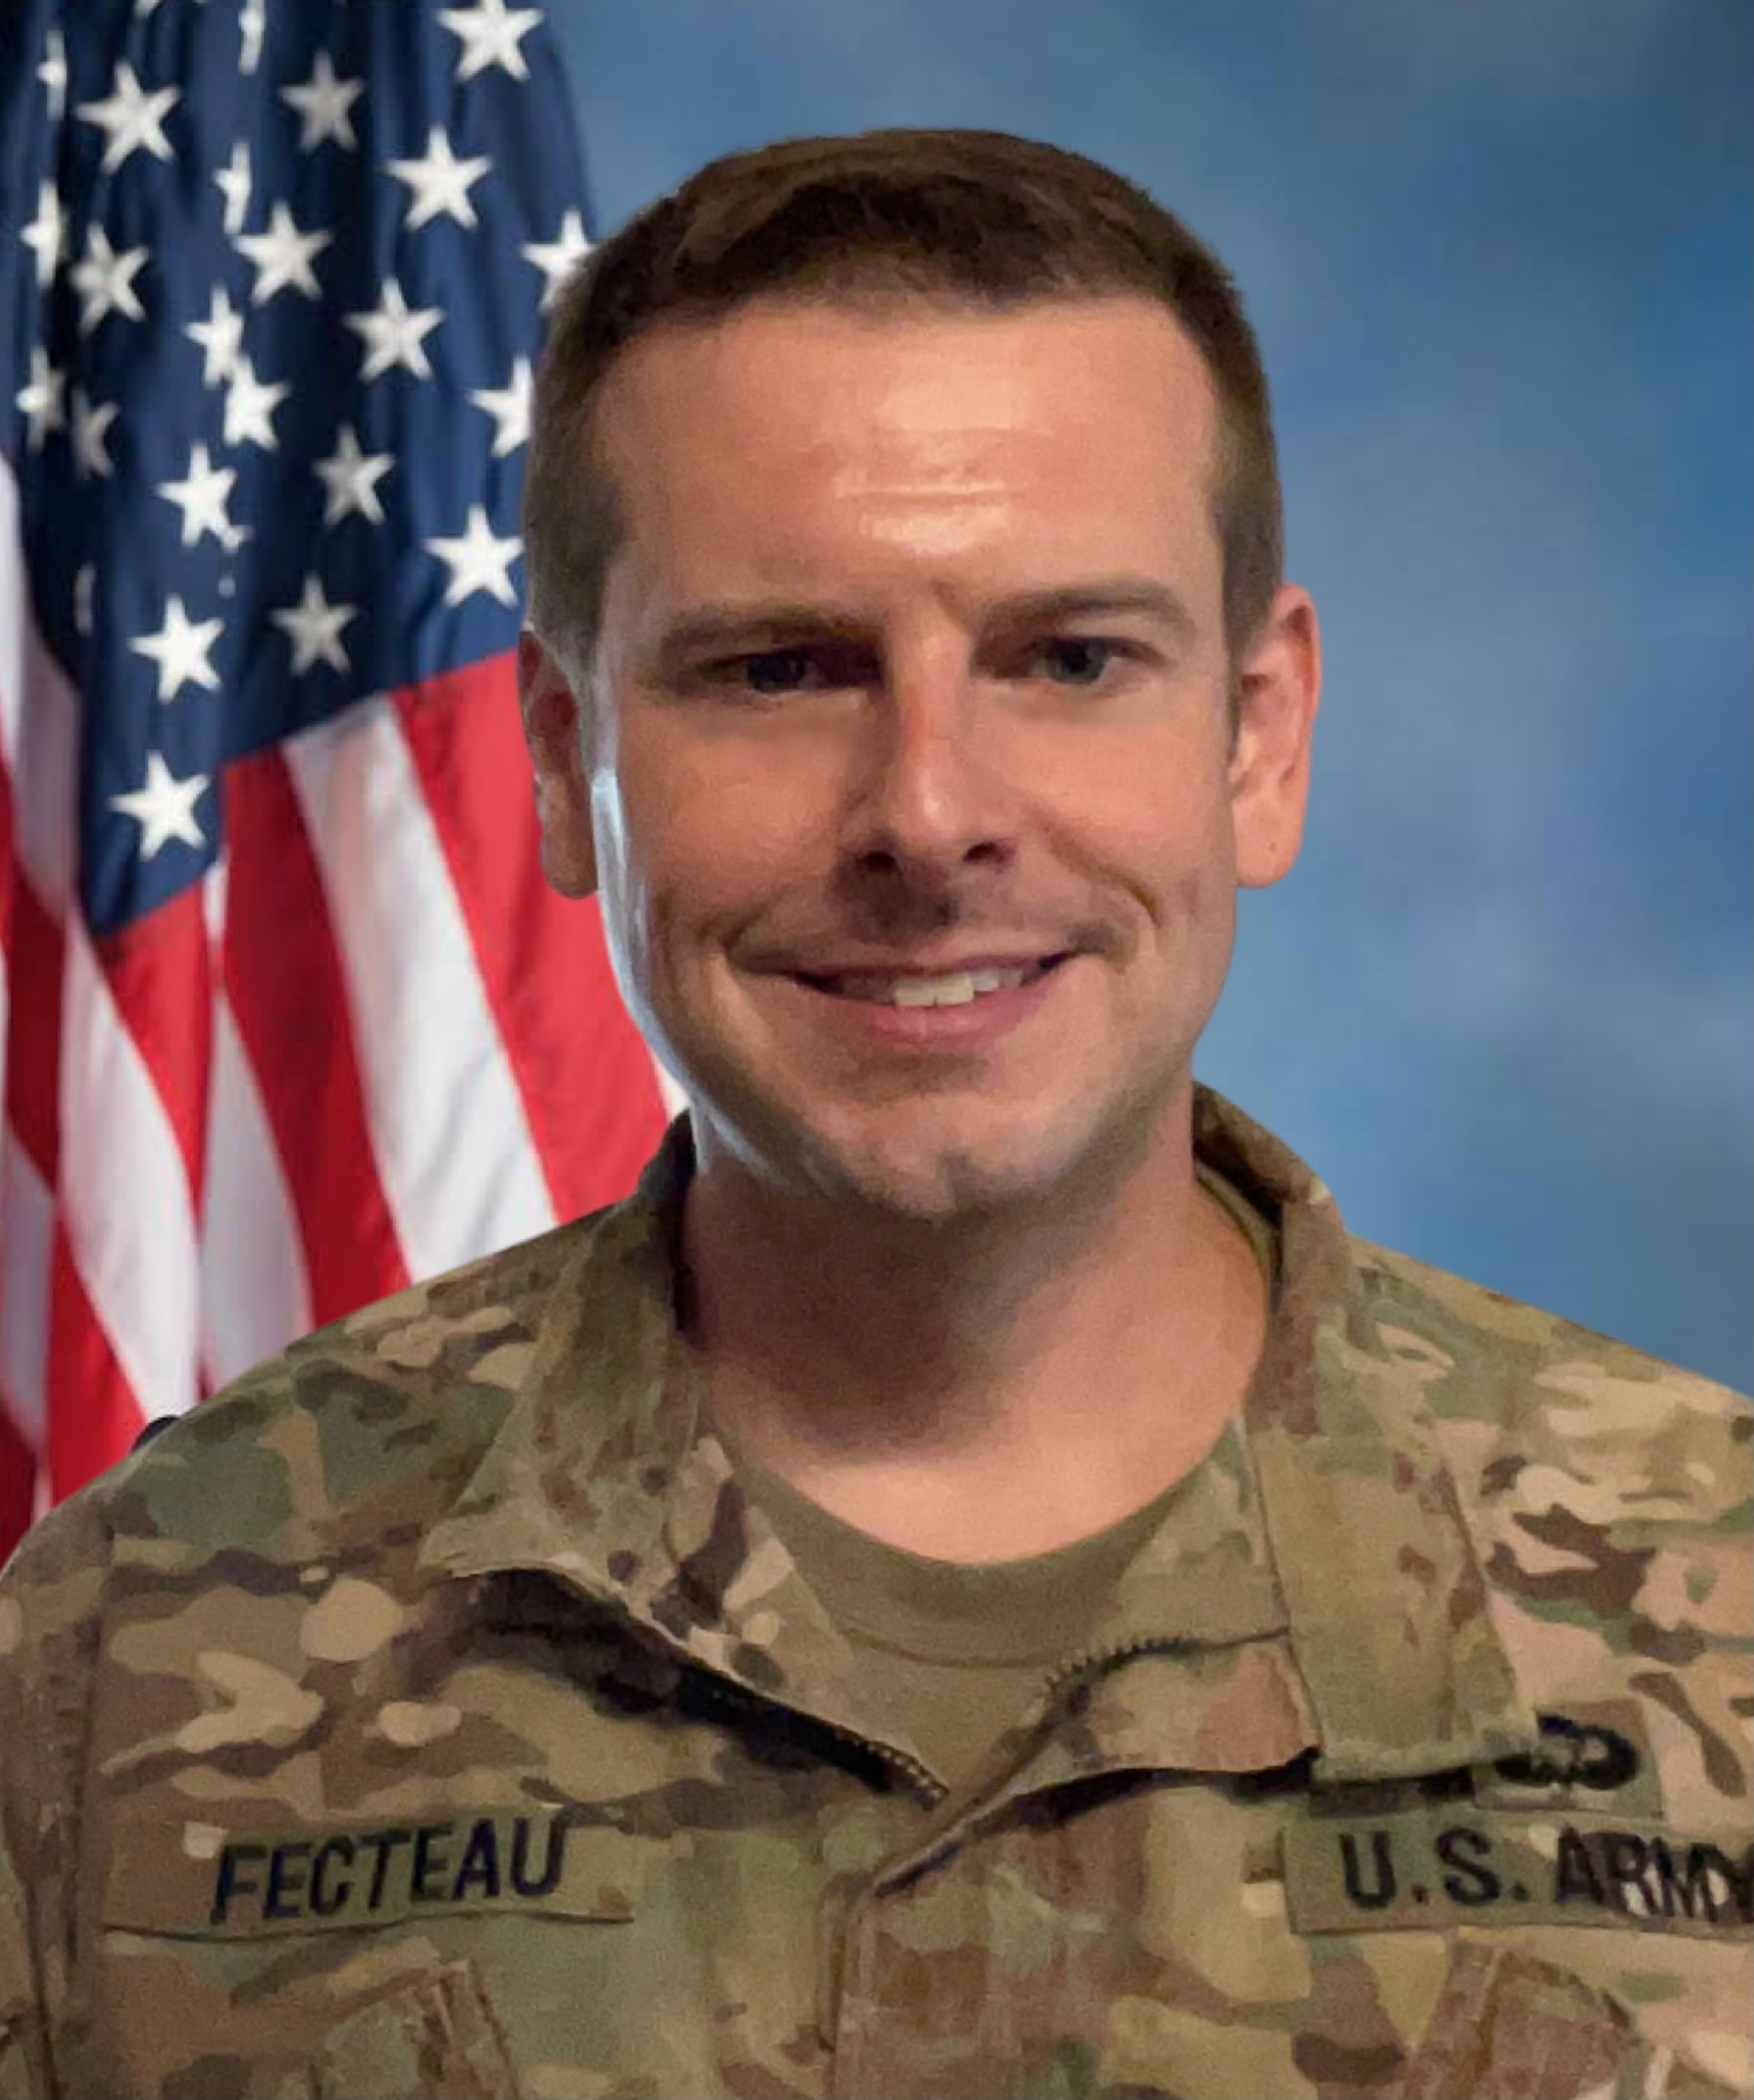 The US Army Promoted Fecteau to Lieutenant Colonel